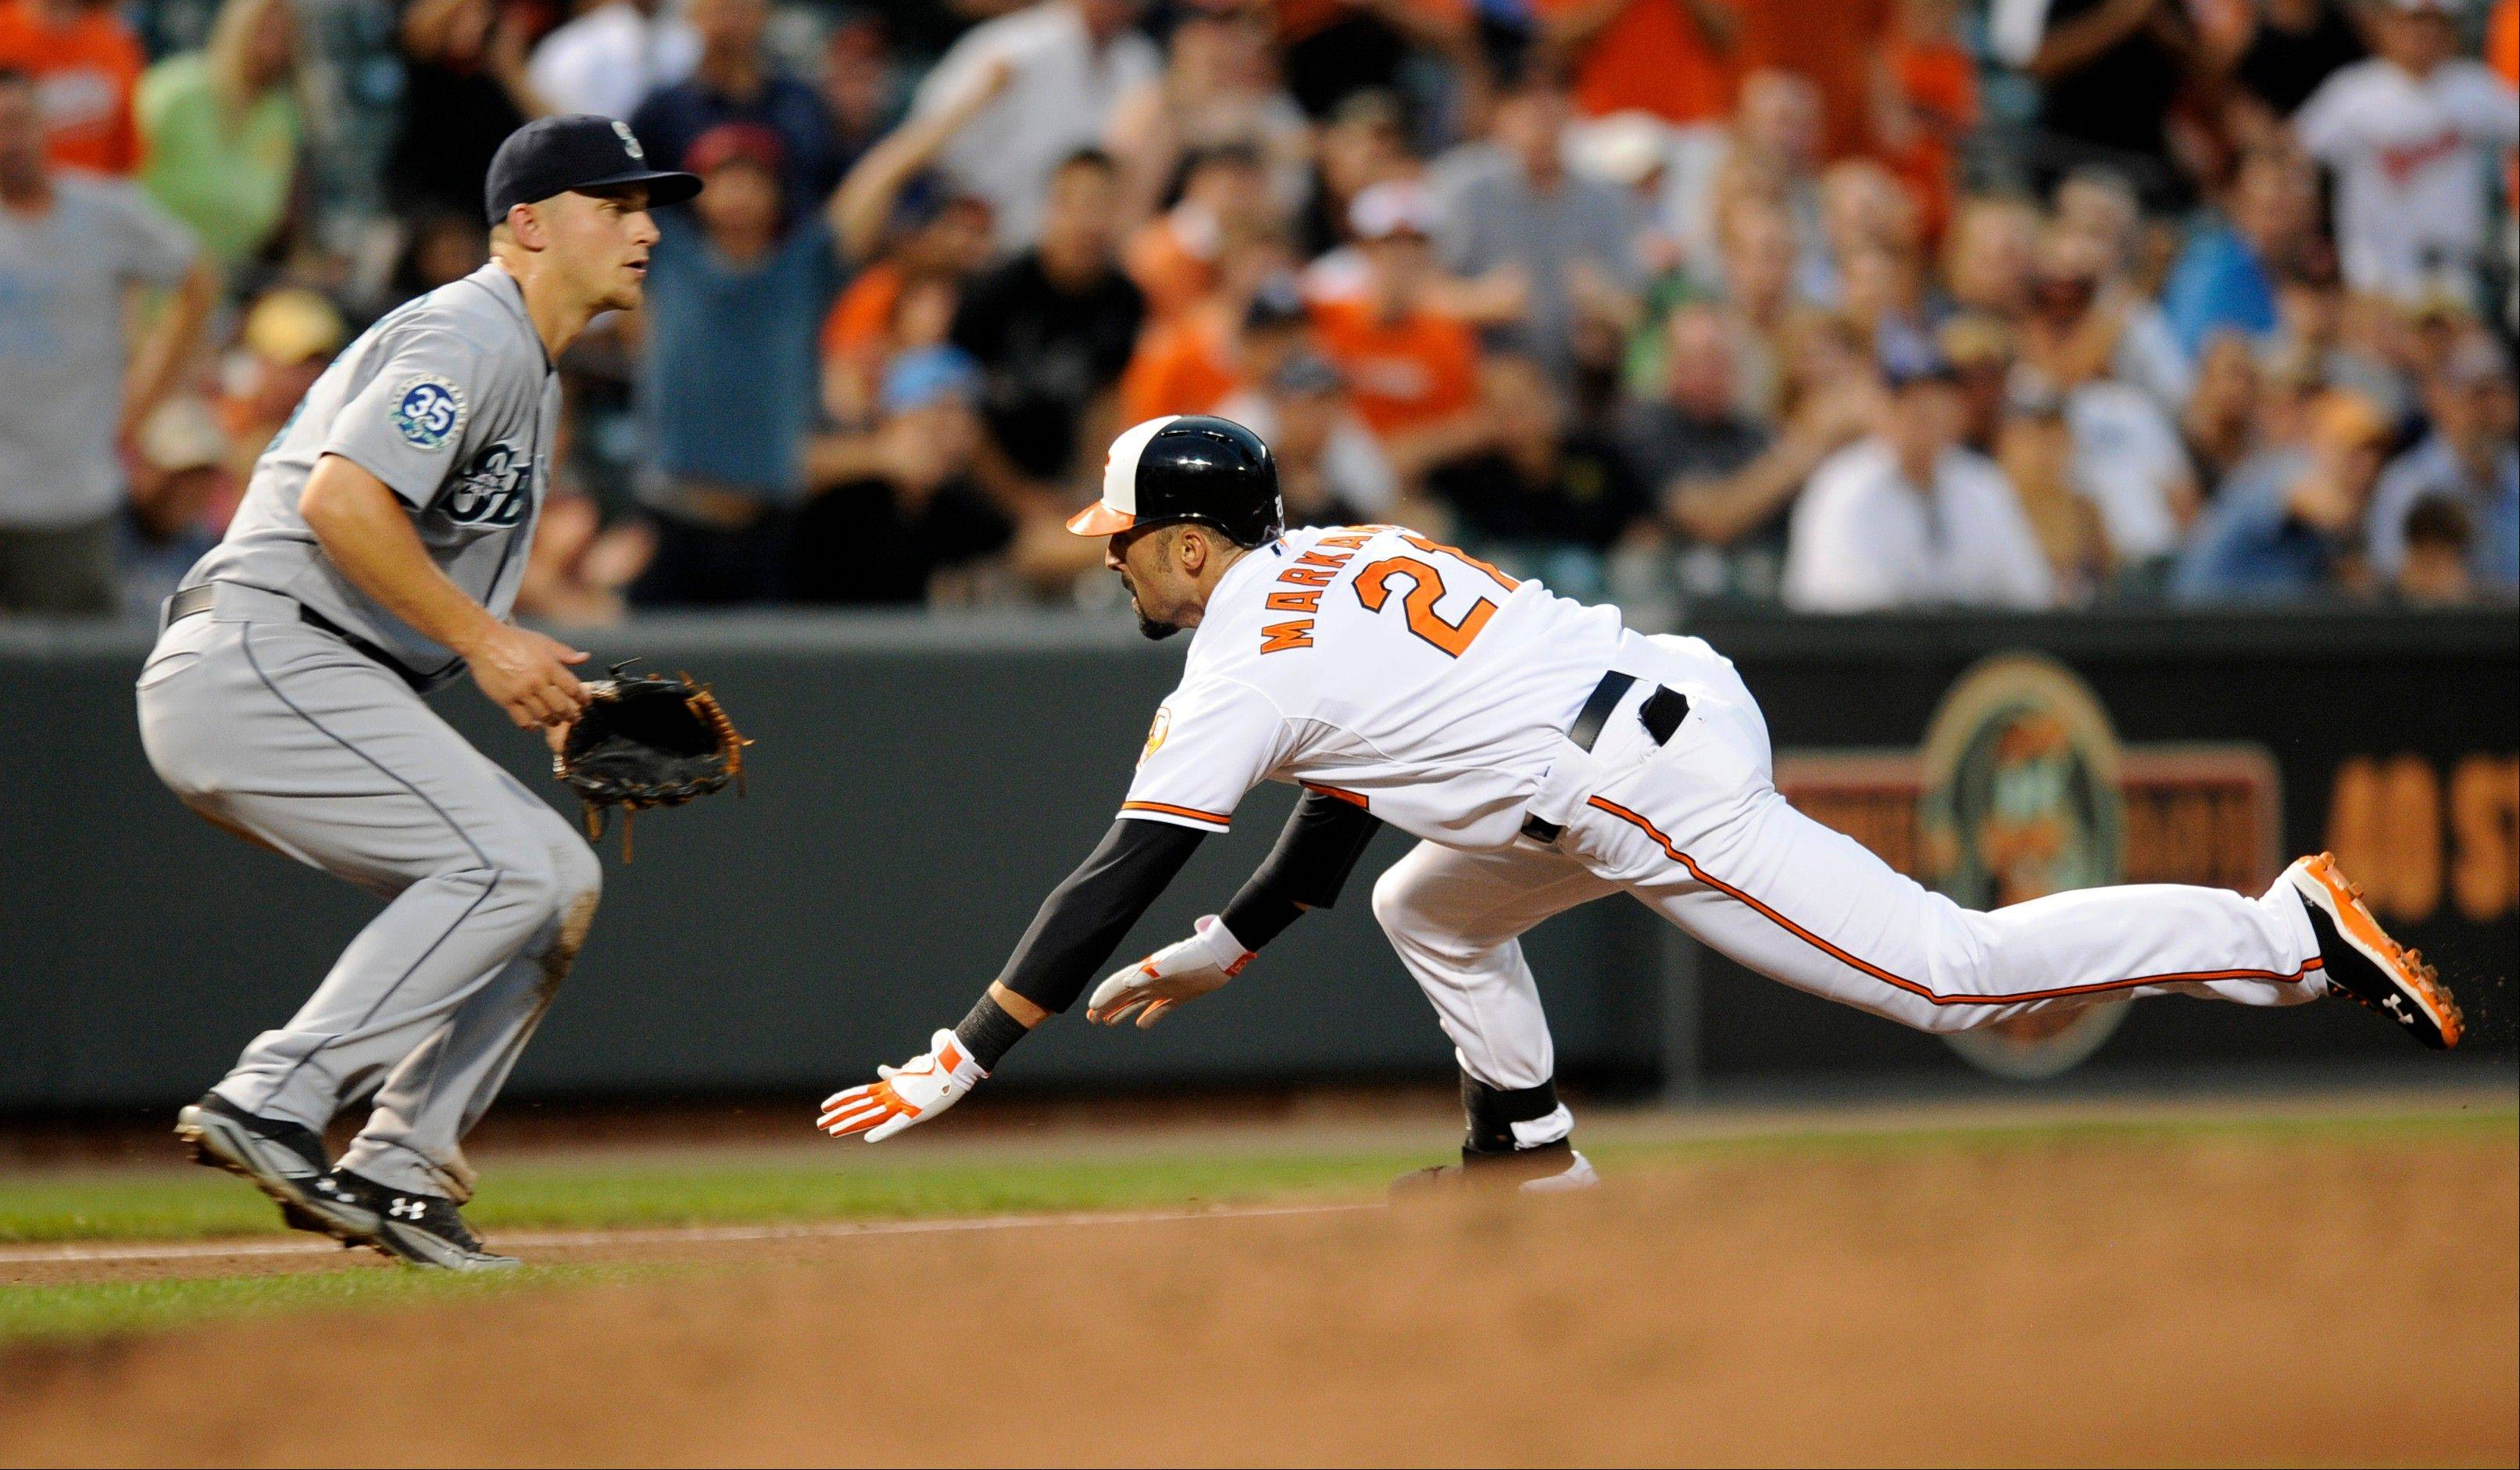 The Orioles' Nick Markakis heads for third on a triple as Seattle Mariners third baseman Kyle Seager waits for the ball during the third inning Wednesday in Baltimore.